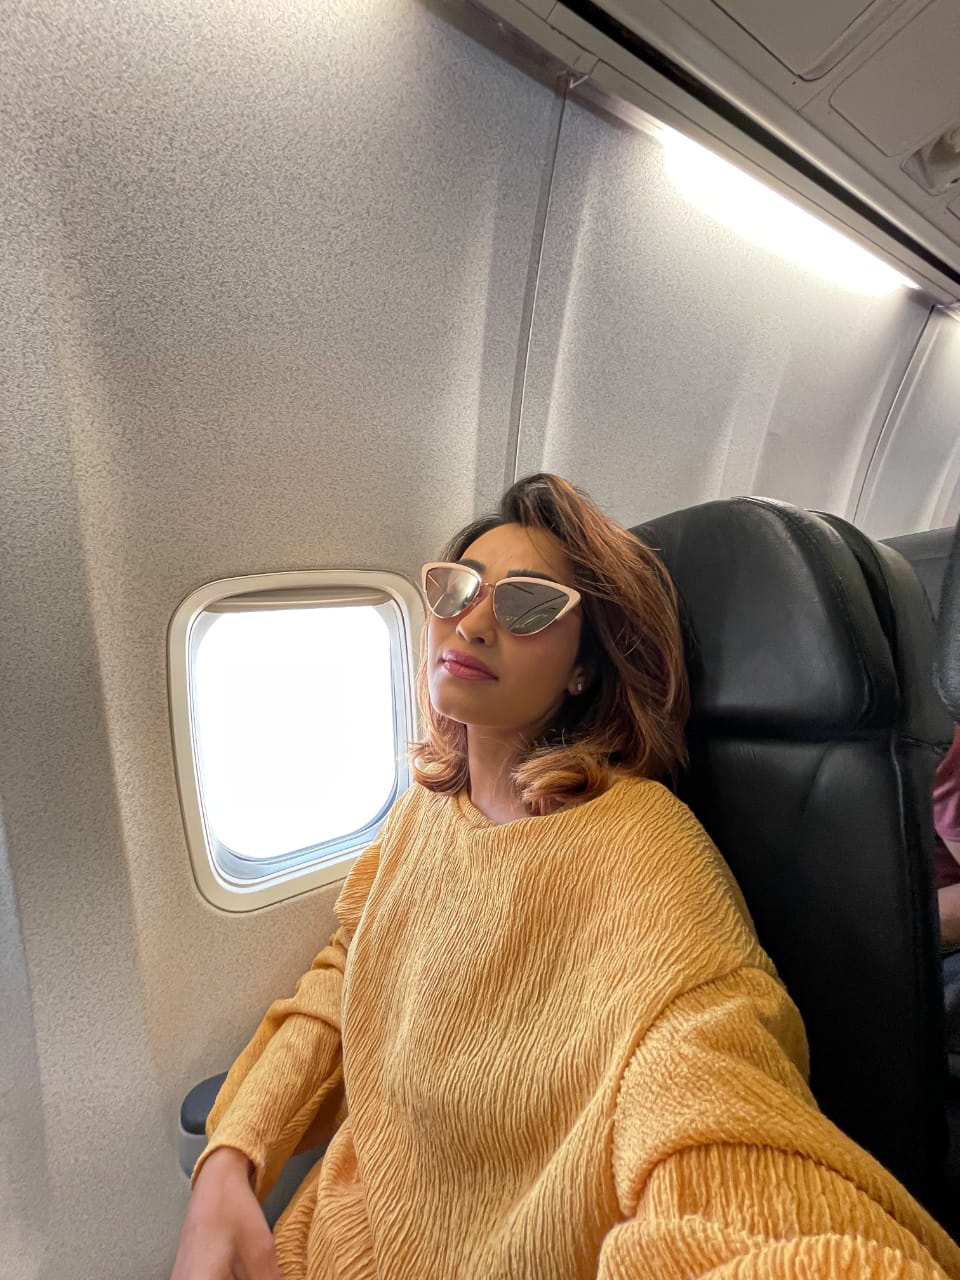 Aarya-Vora-the-Solo-Traveller-is-all-set-to-explore-Kashmir-Valley